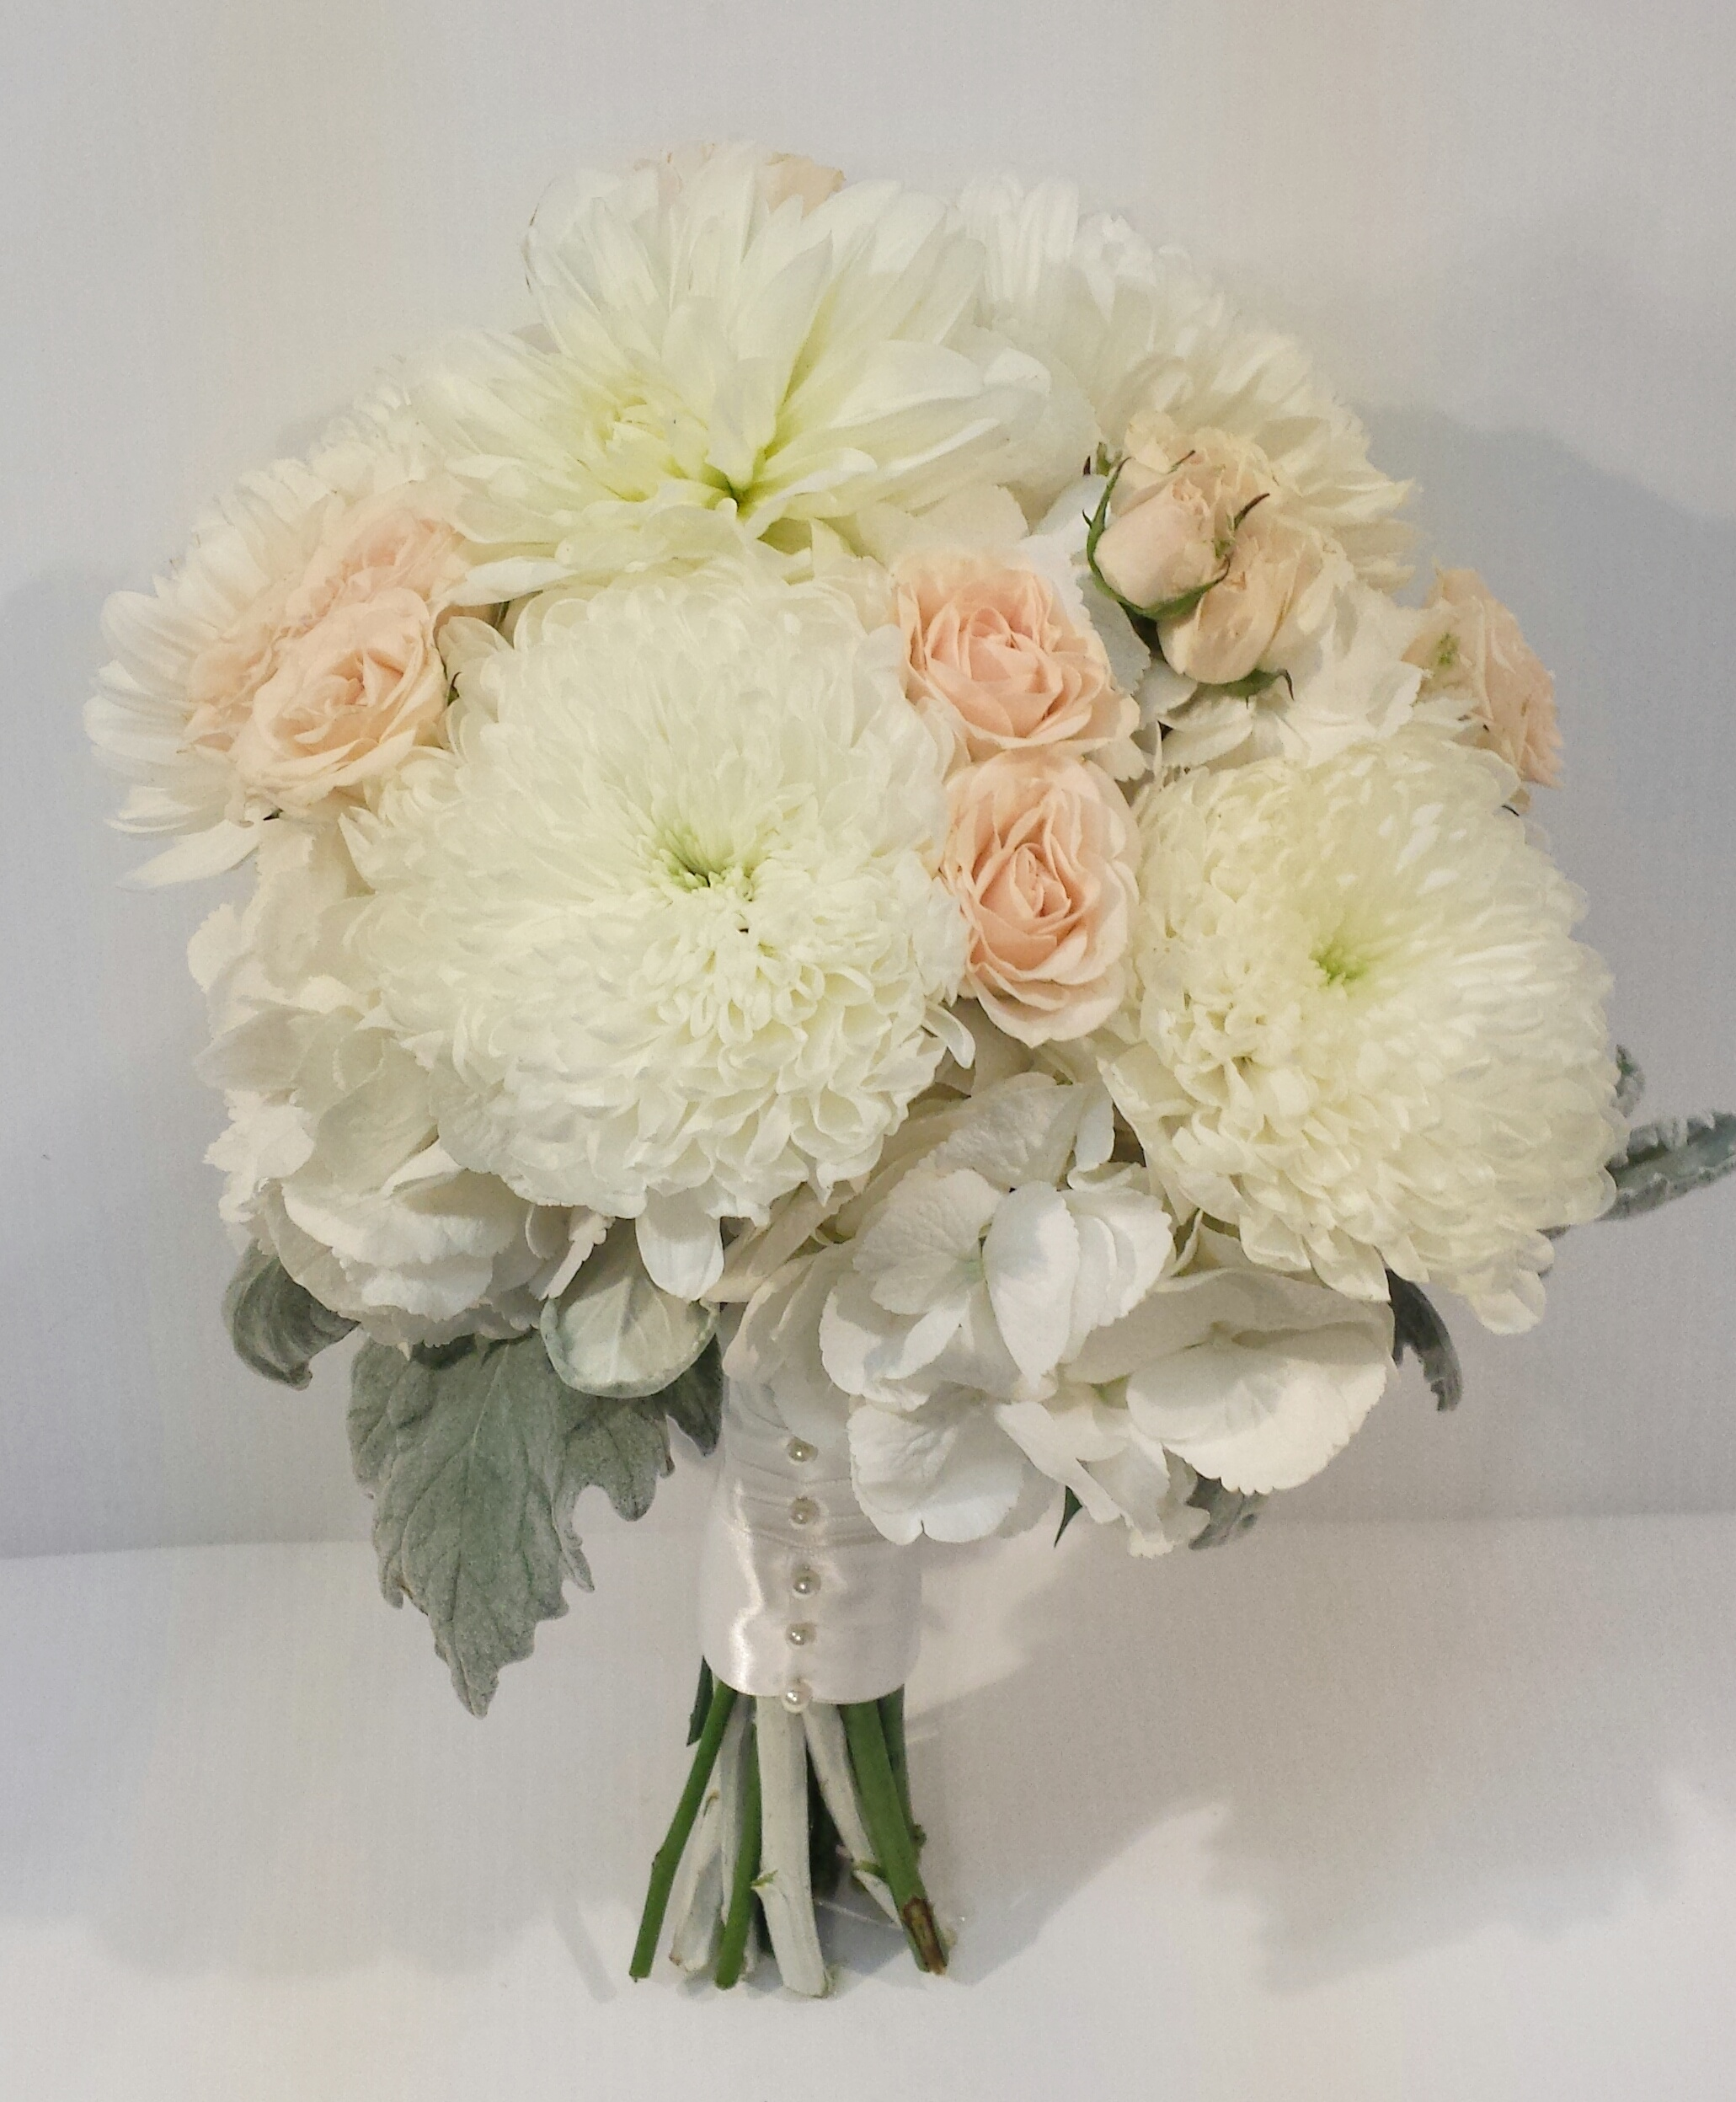 Peach and Coral Wedding Bouquets - Dahlia Floral Design